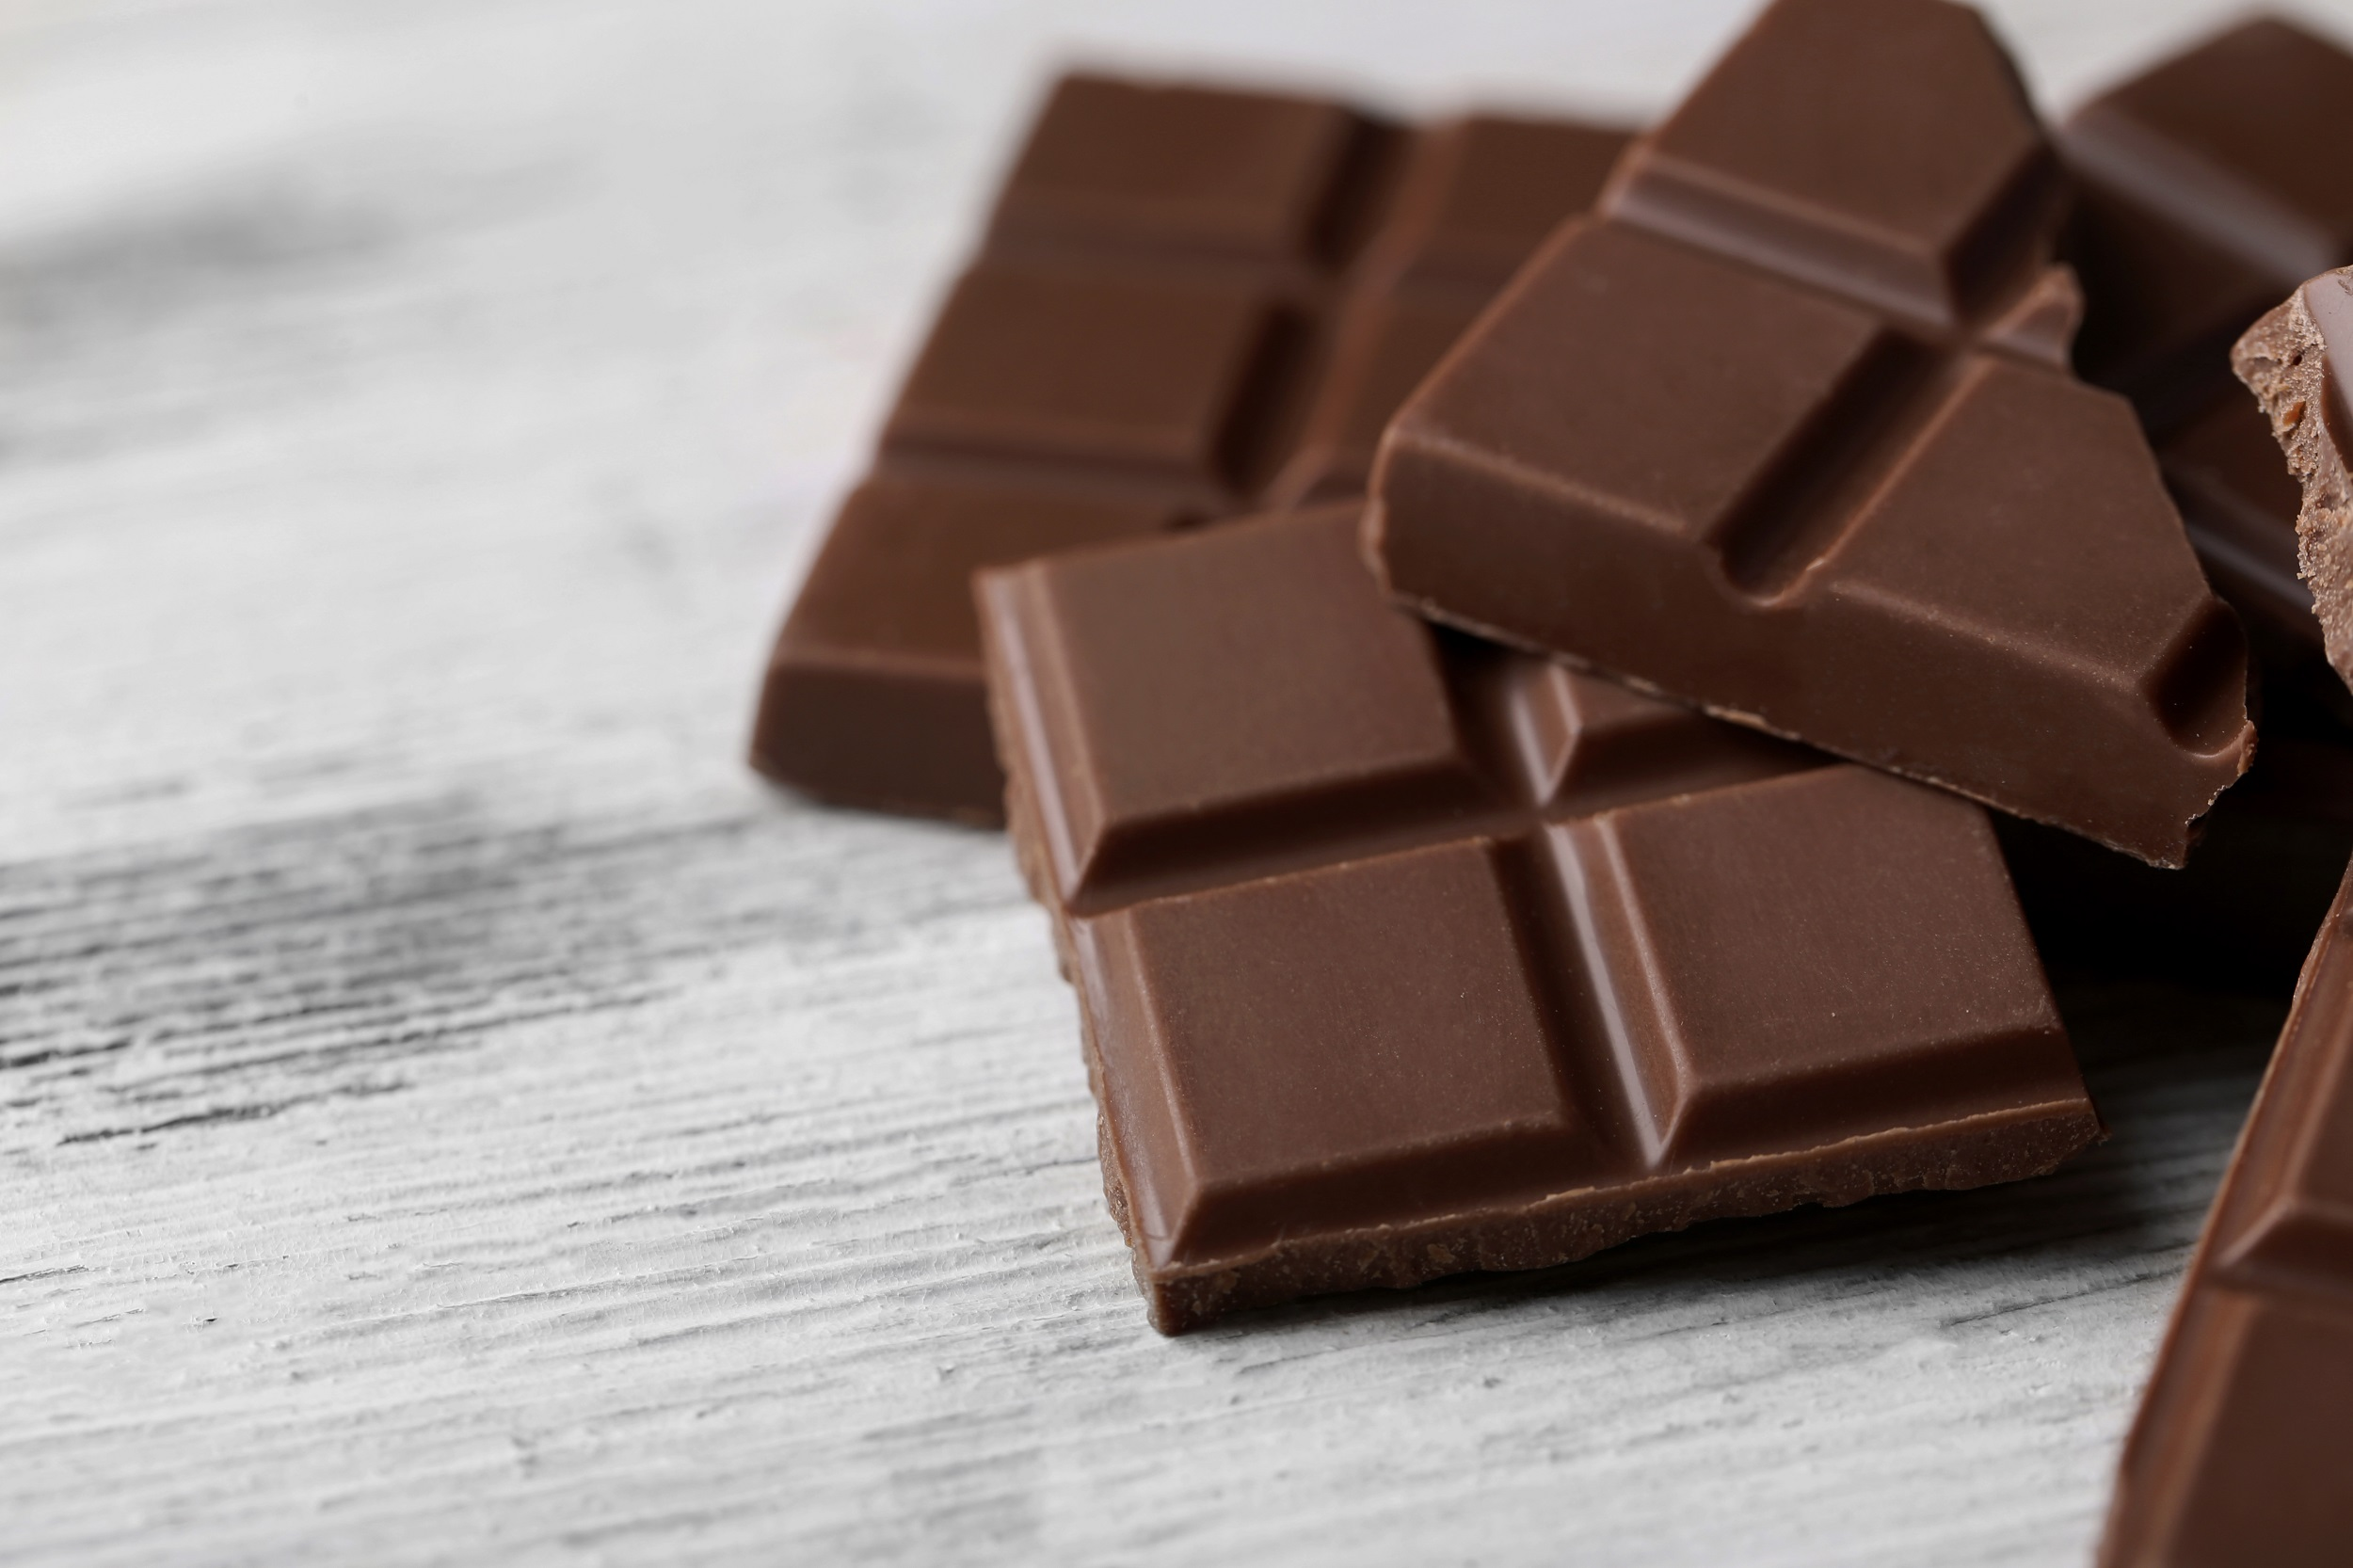 Chocolate Bar Squares White Wood Background